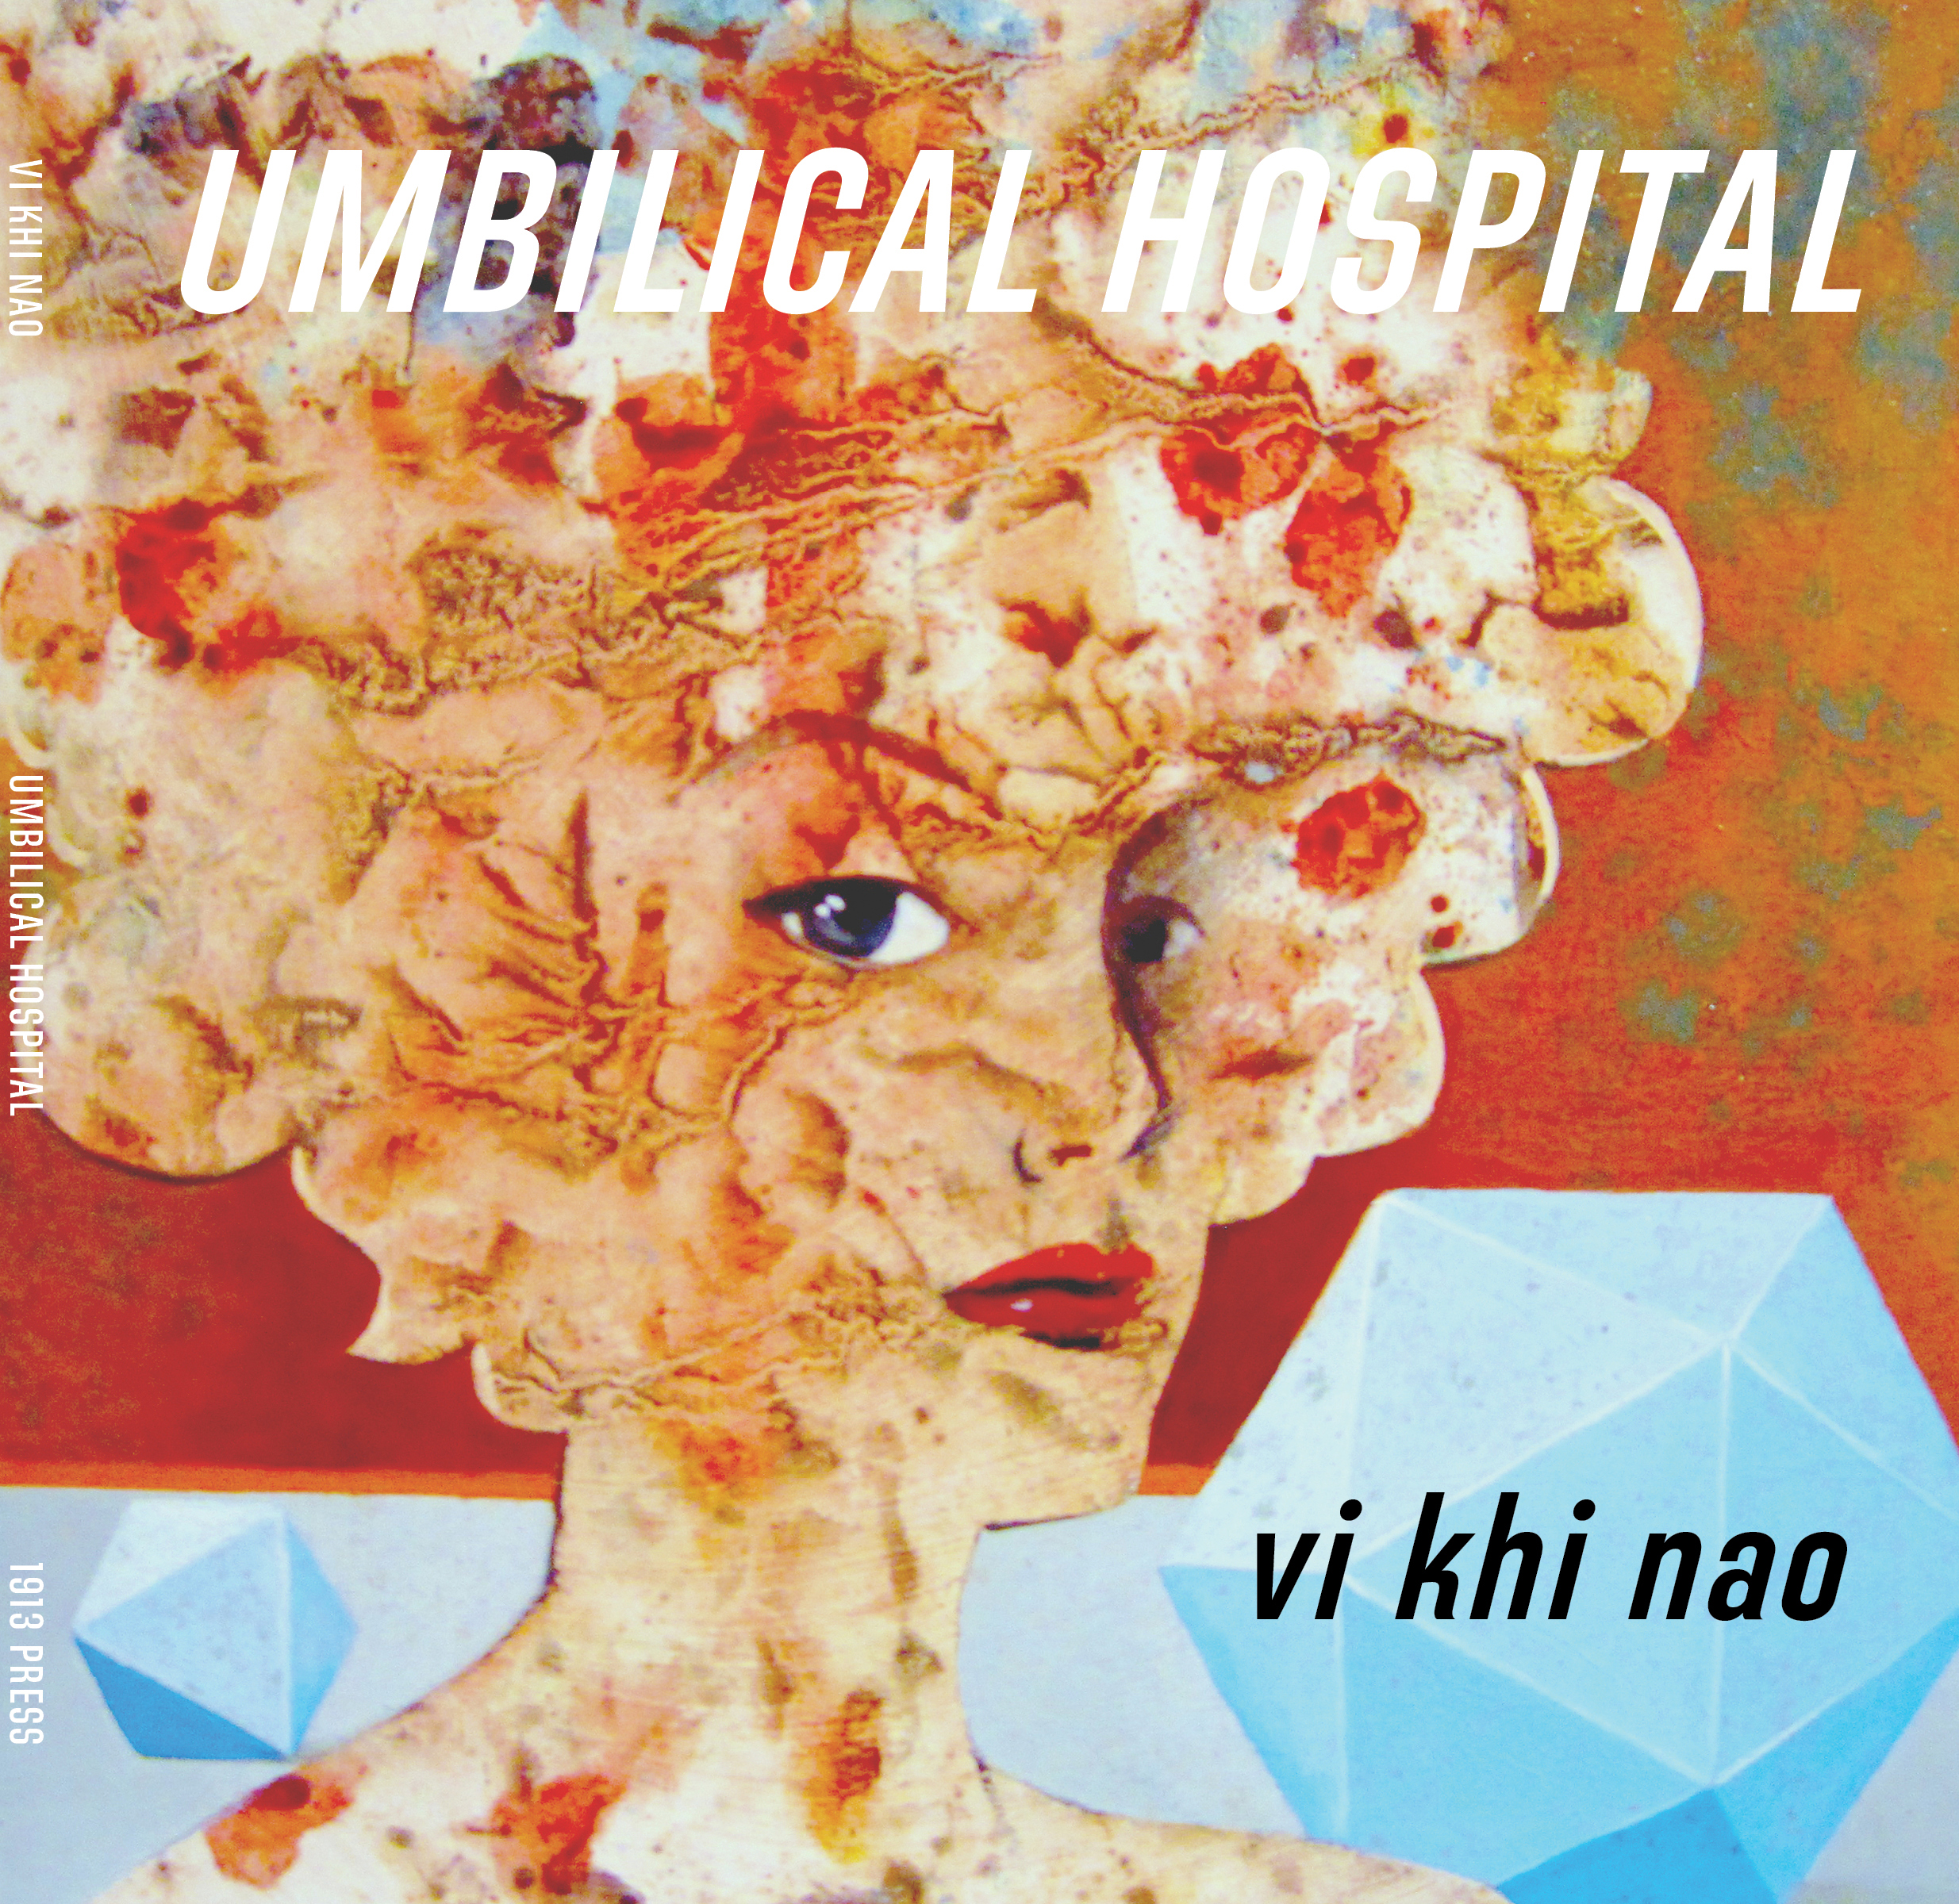 Umbilical Hospital Front w spine copy